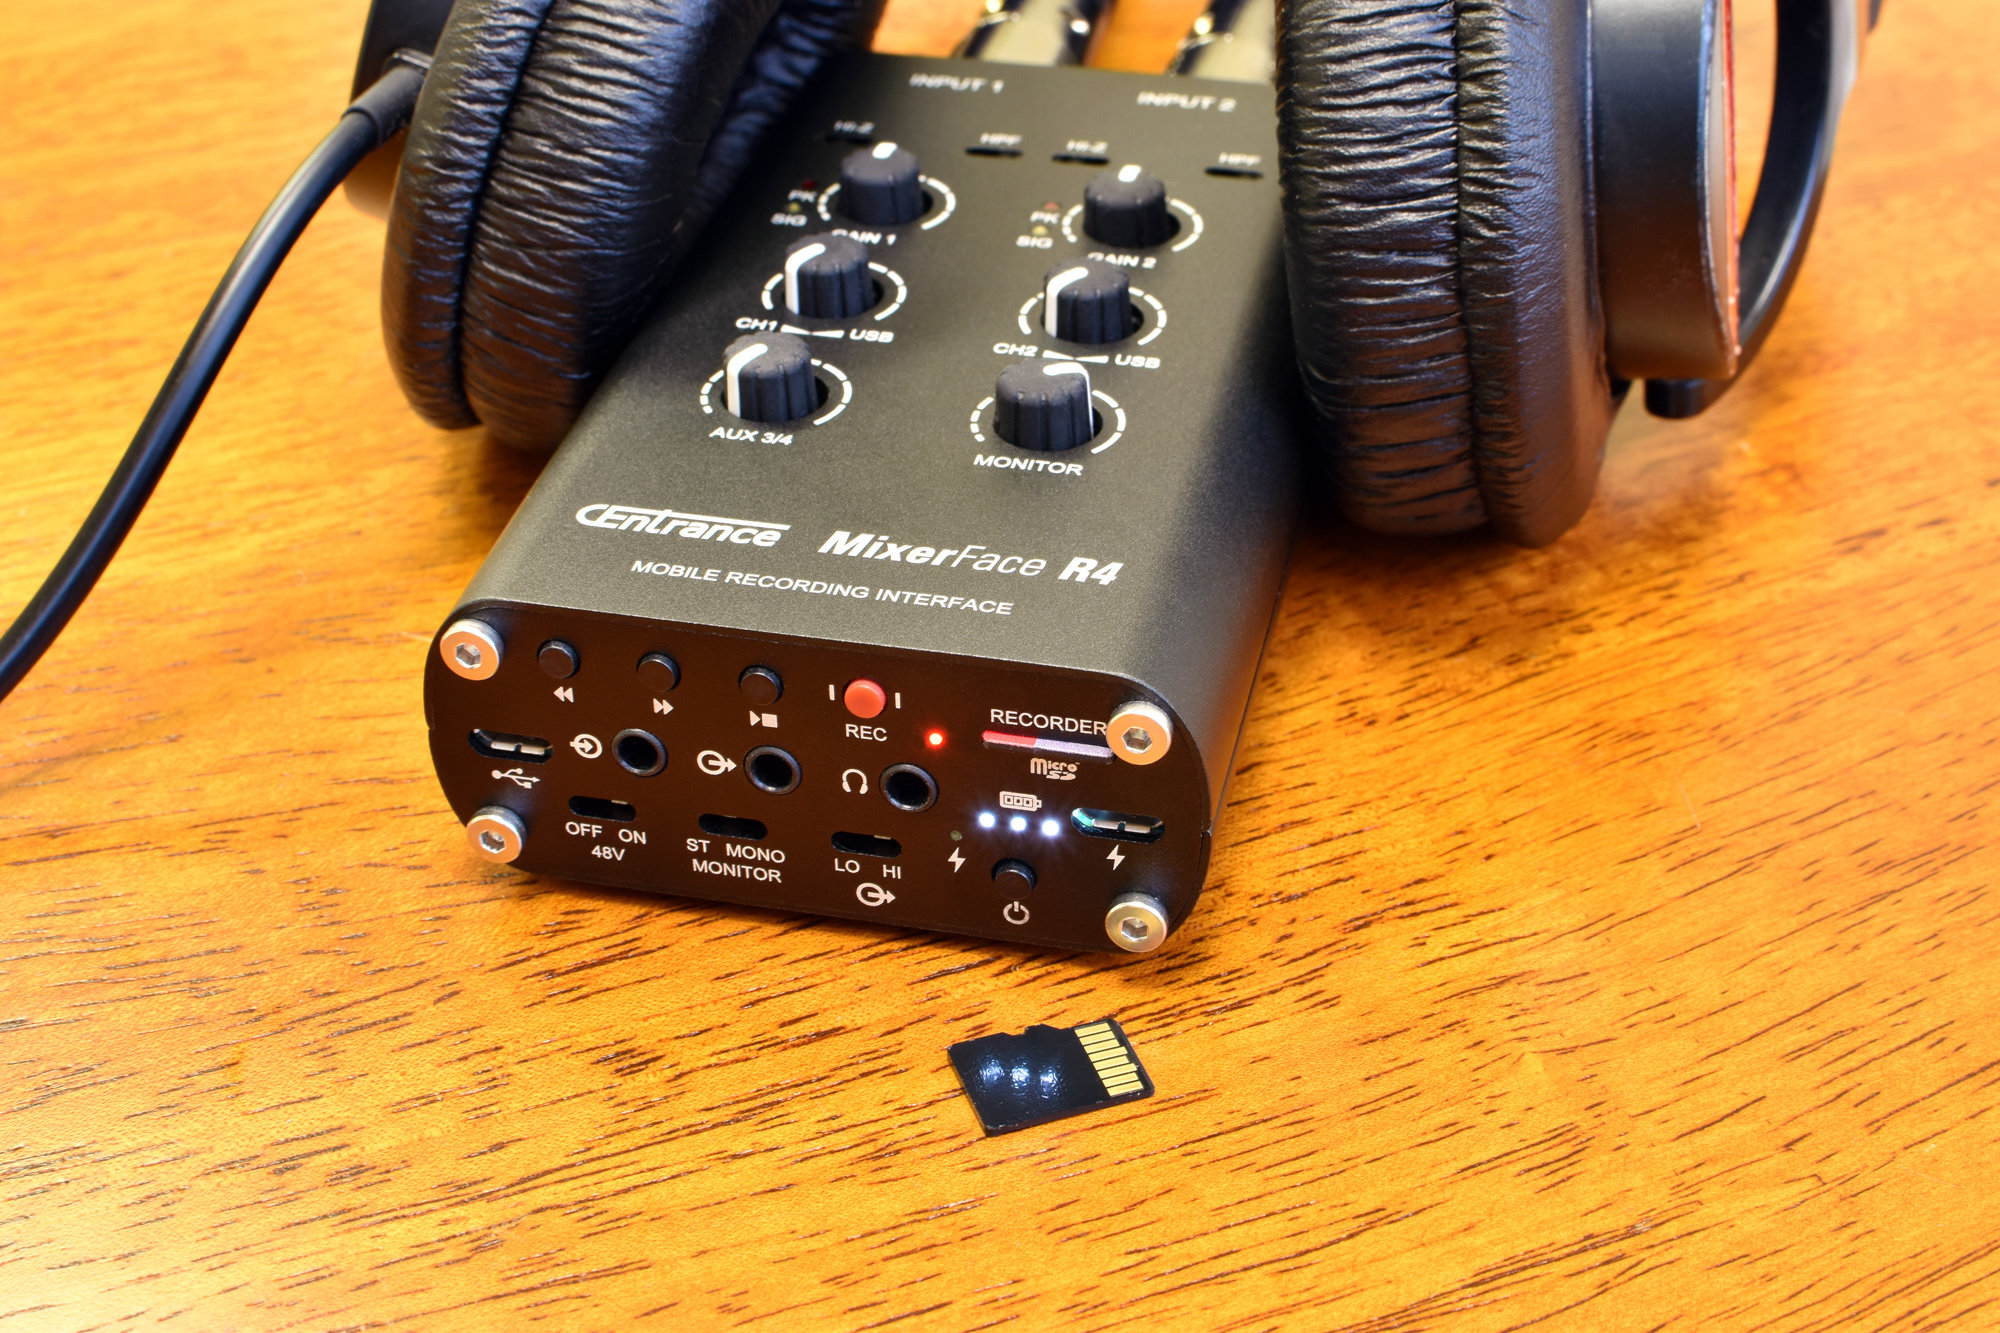 MixerFace R4B - Mobile Recording Interface with micro-SD Card Recorder and XY Stereo mics  (Mics shipping in April 2019)